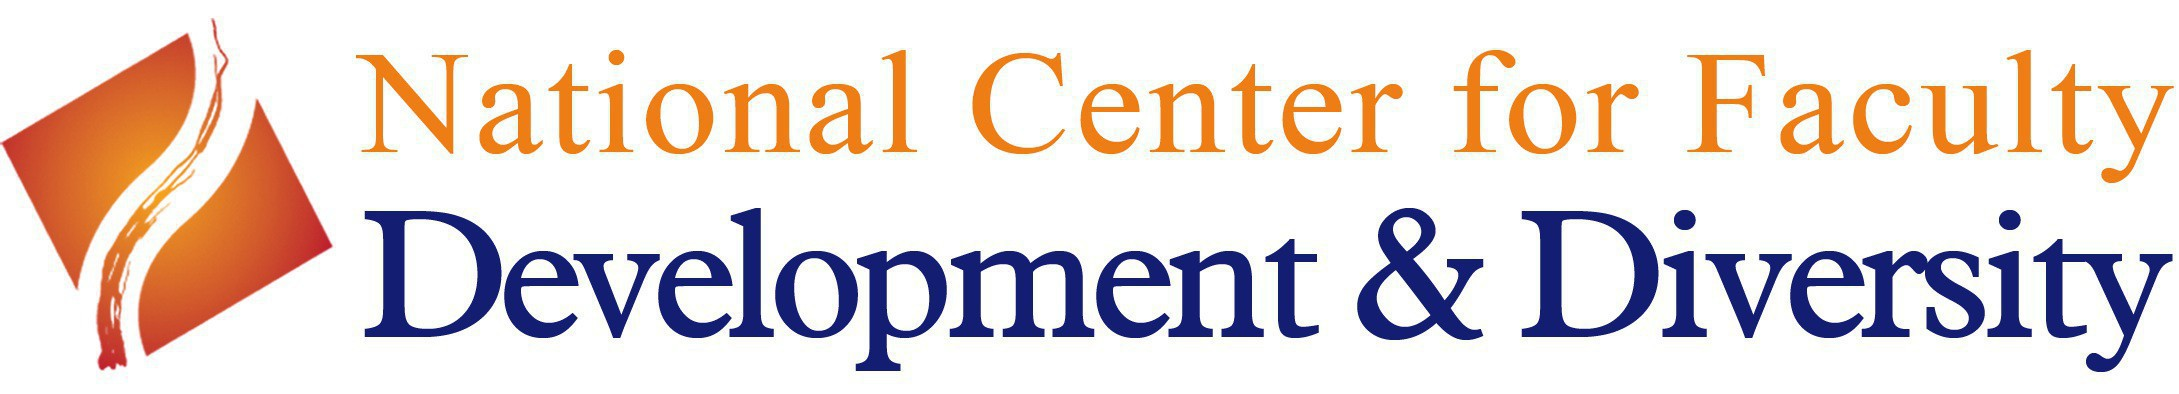 national center for faculty development and diversity logo